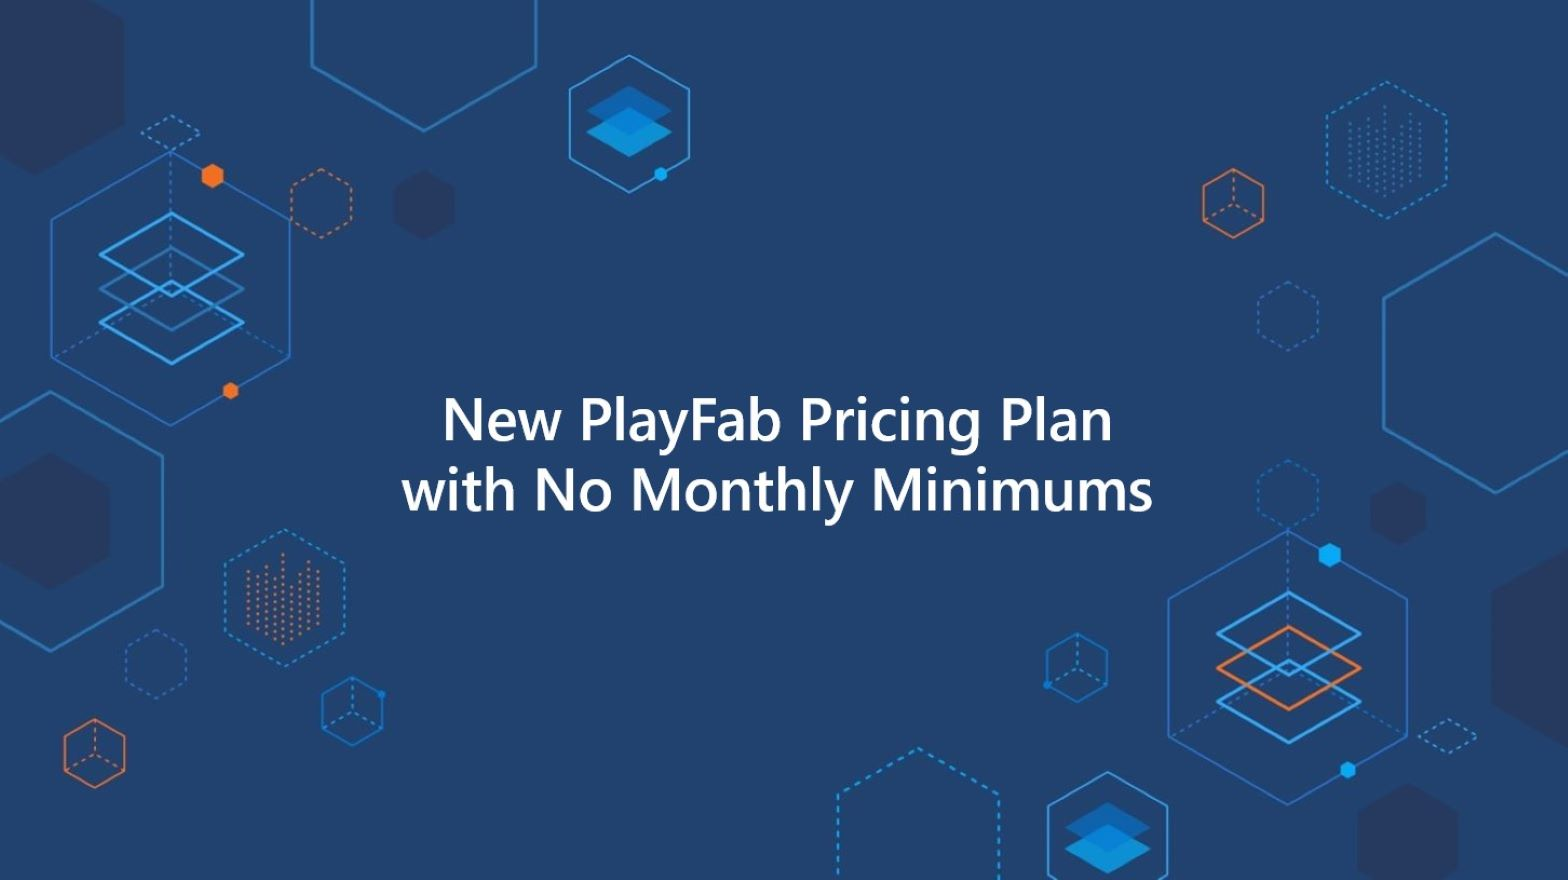 New Playfab pricing plan with no monthly minimums